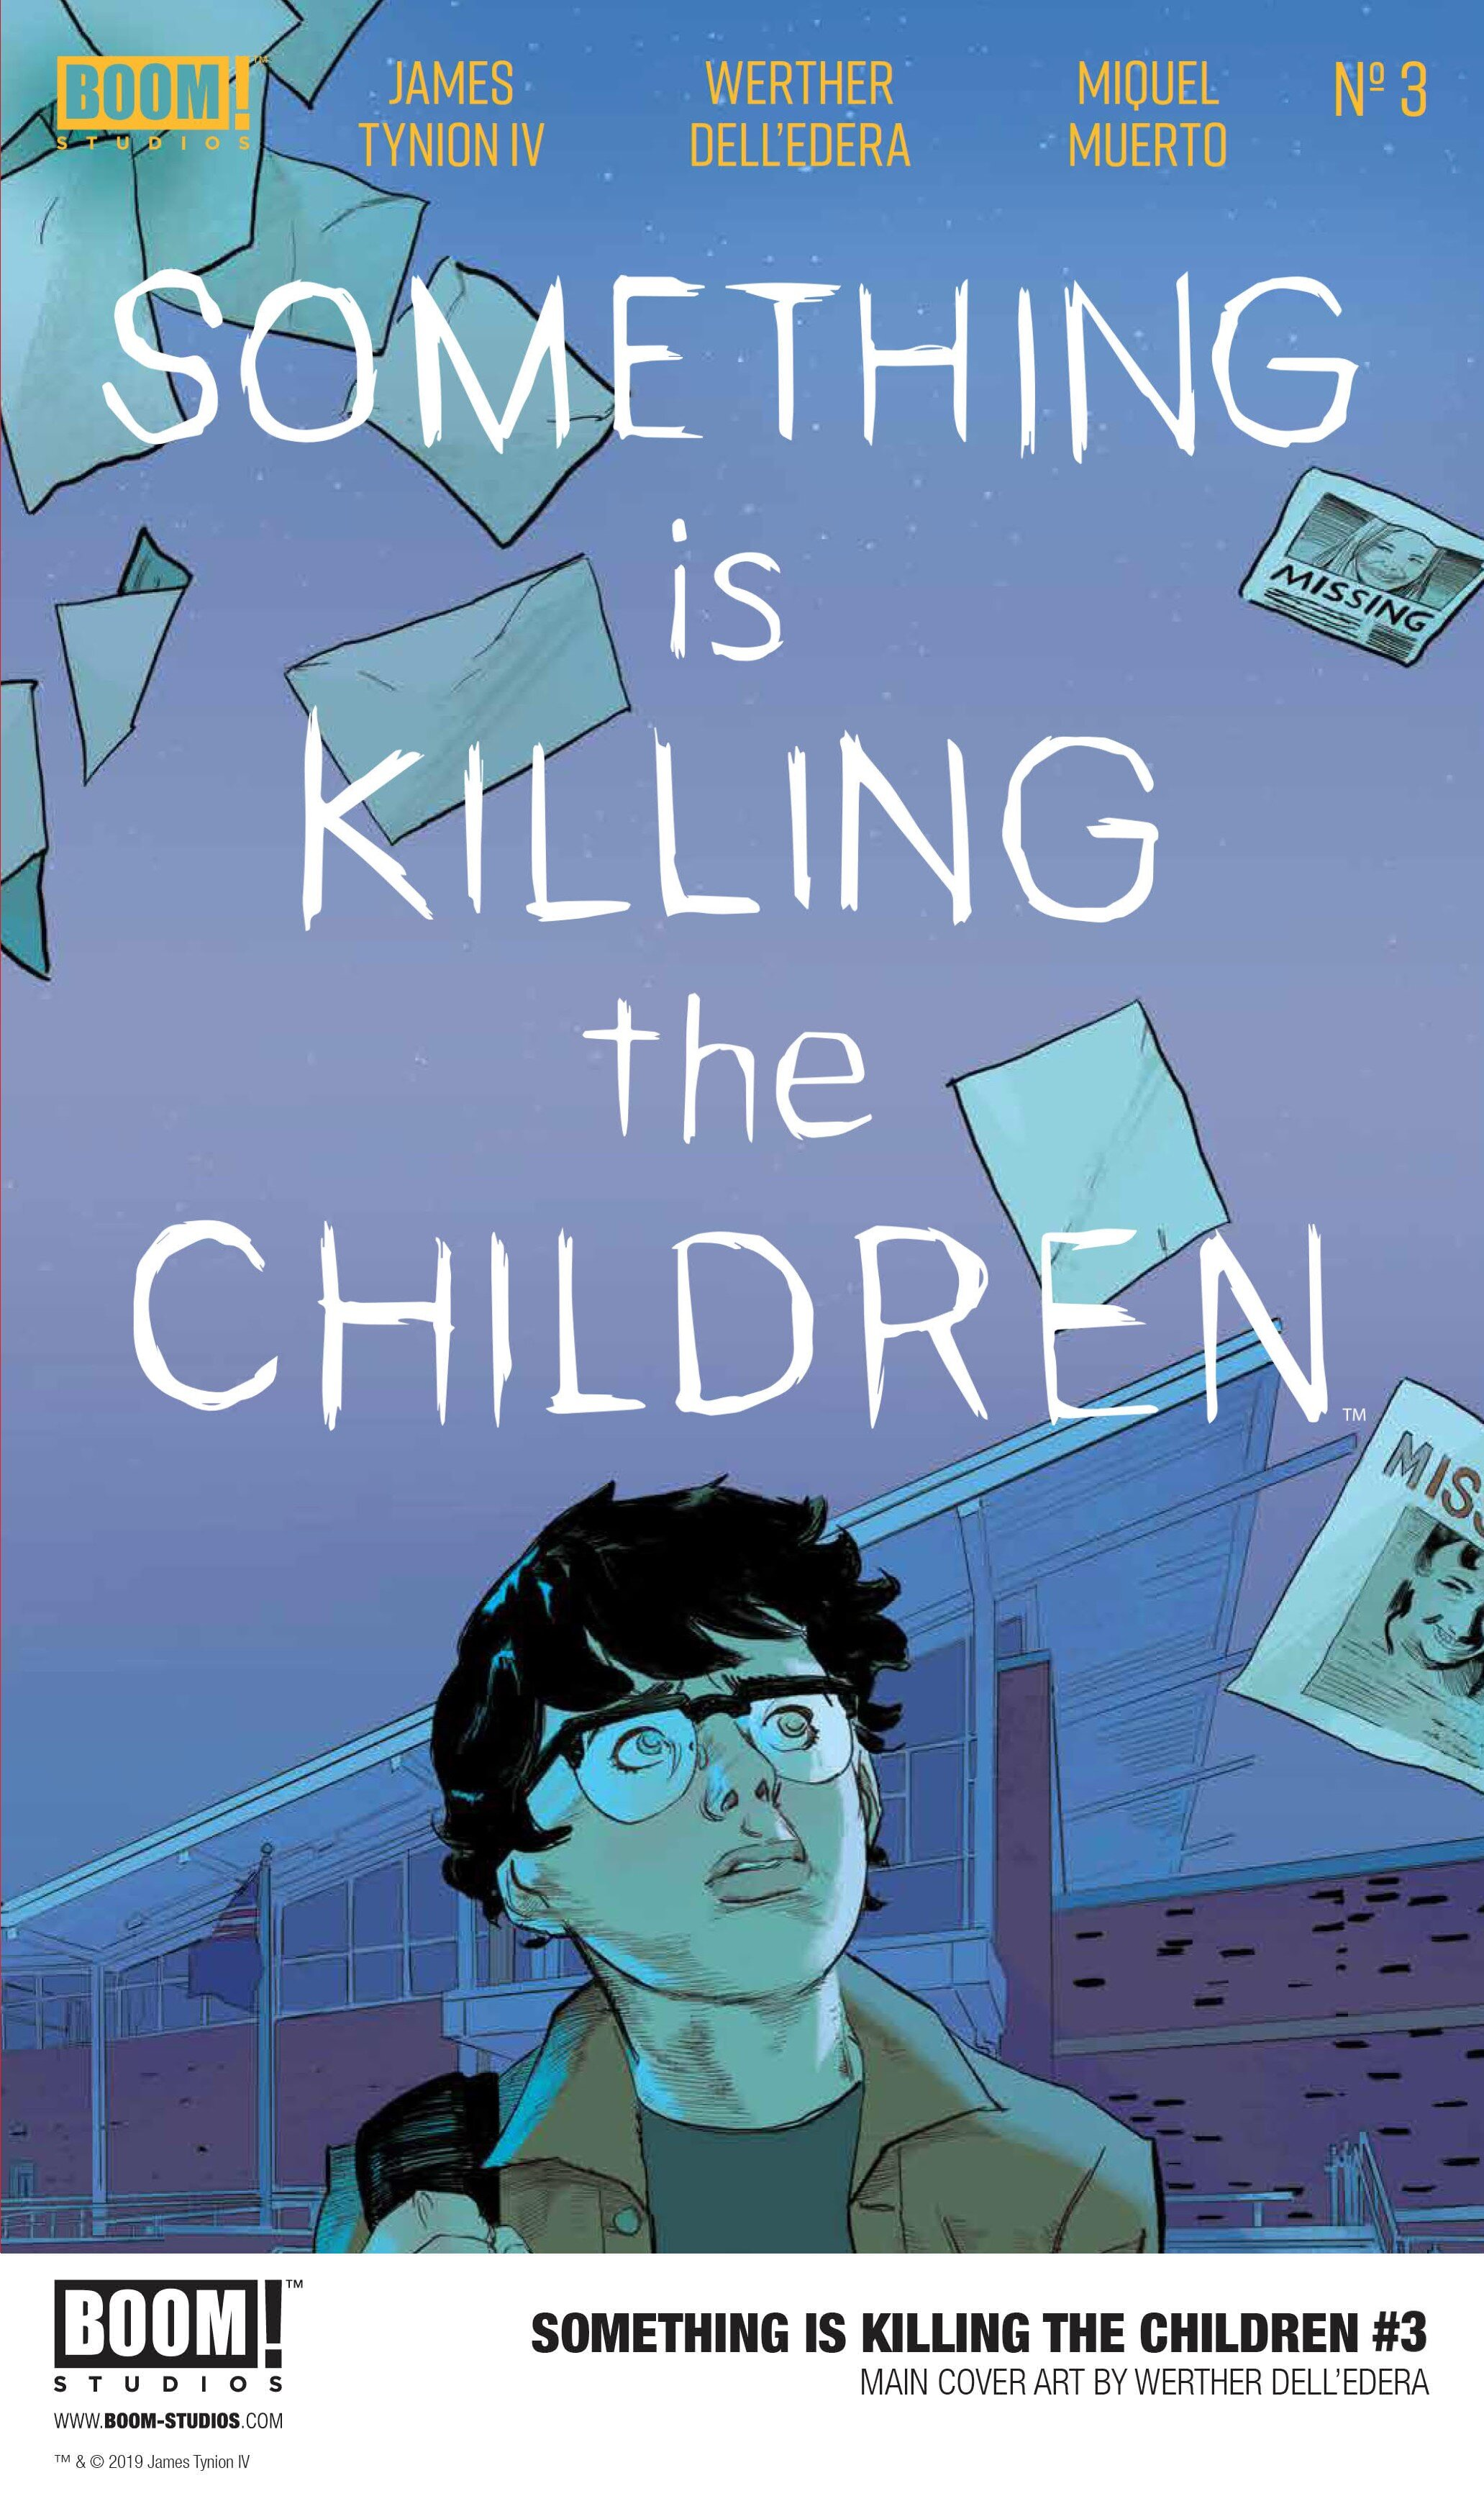 SomethingKillingChildren_003_Cover_Main_Promo.jpg